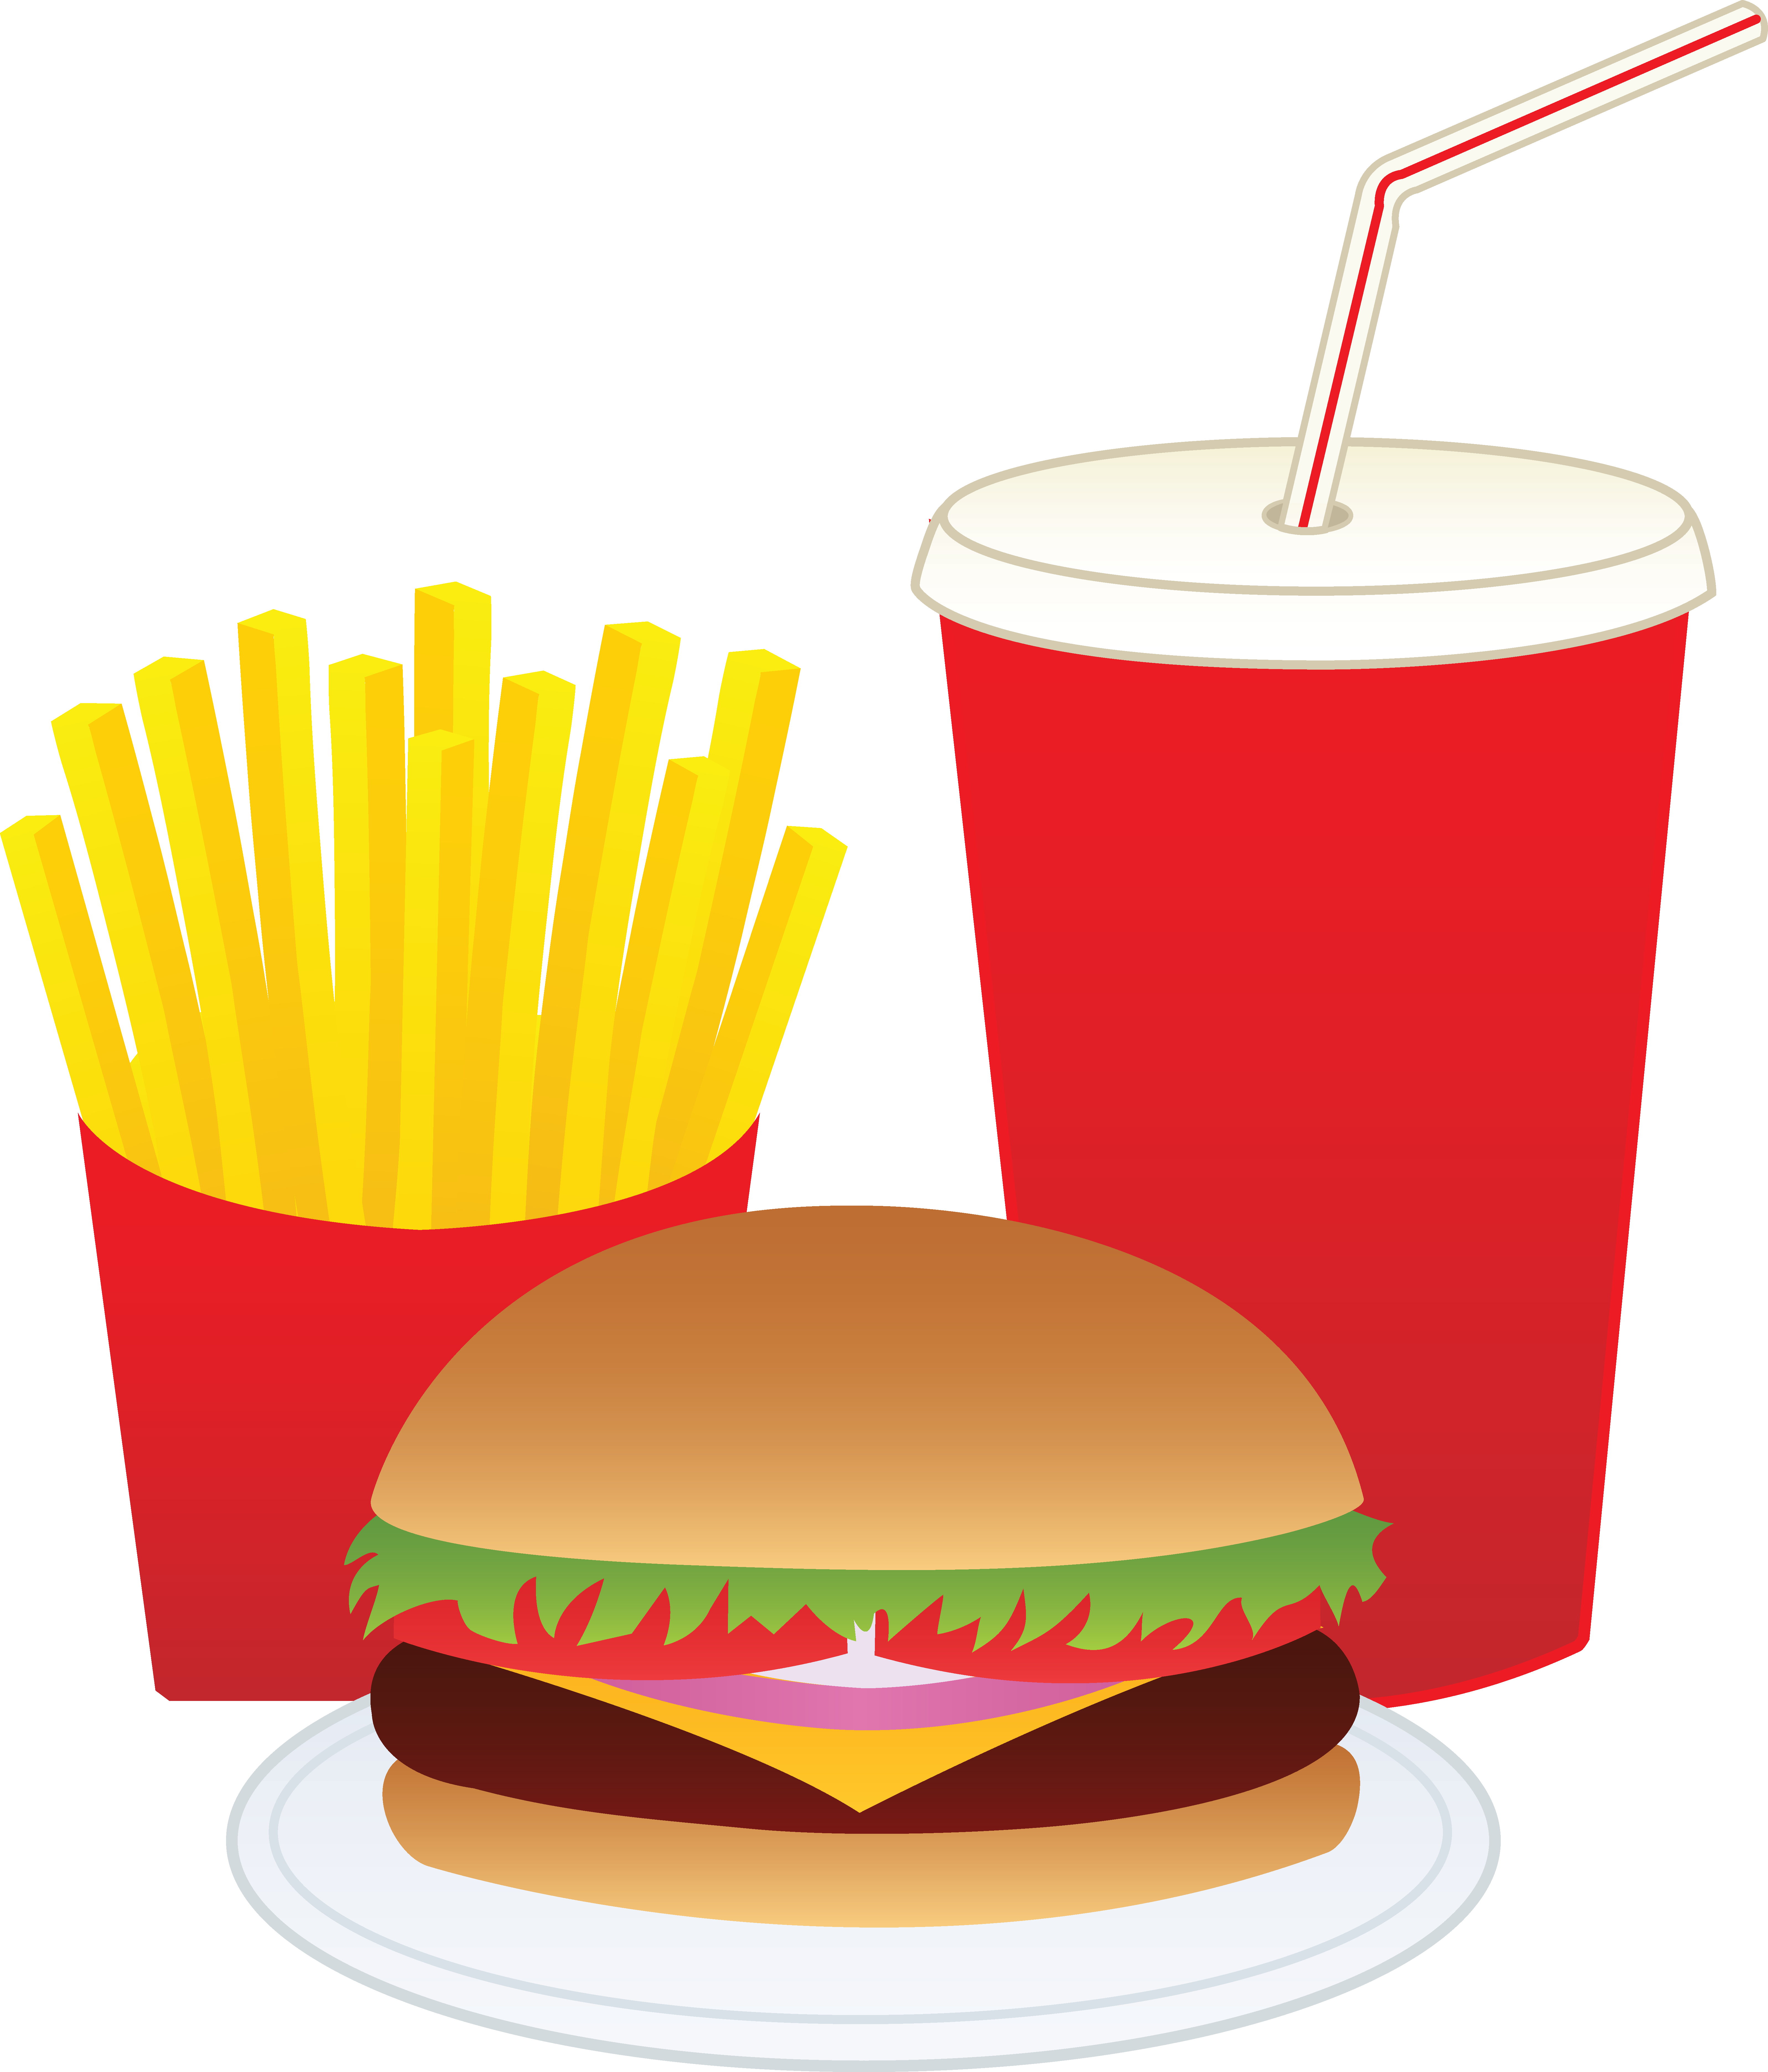 Hot dog and chips clipart banner free stock 28+ Collection of Hamburger And French Fries Clipart | High quality ... banner free stock